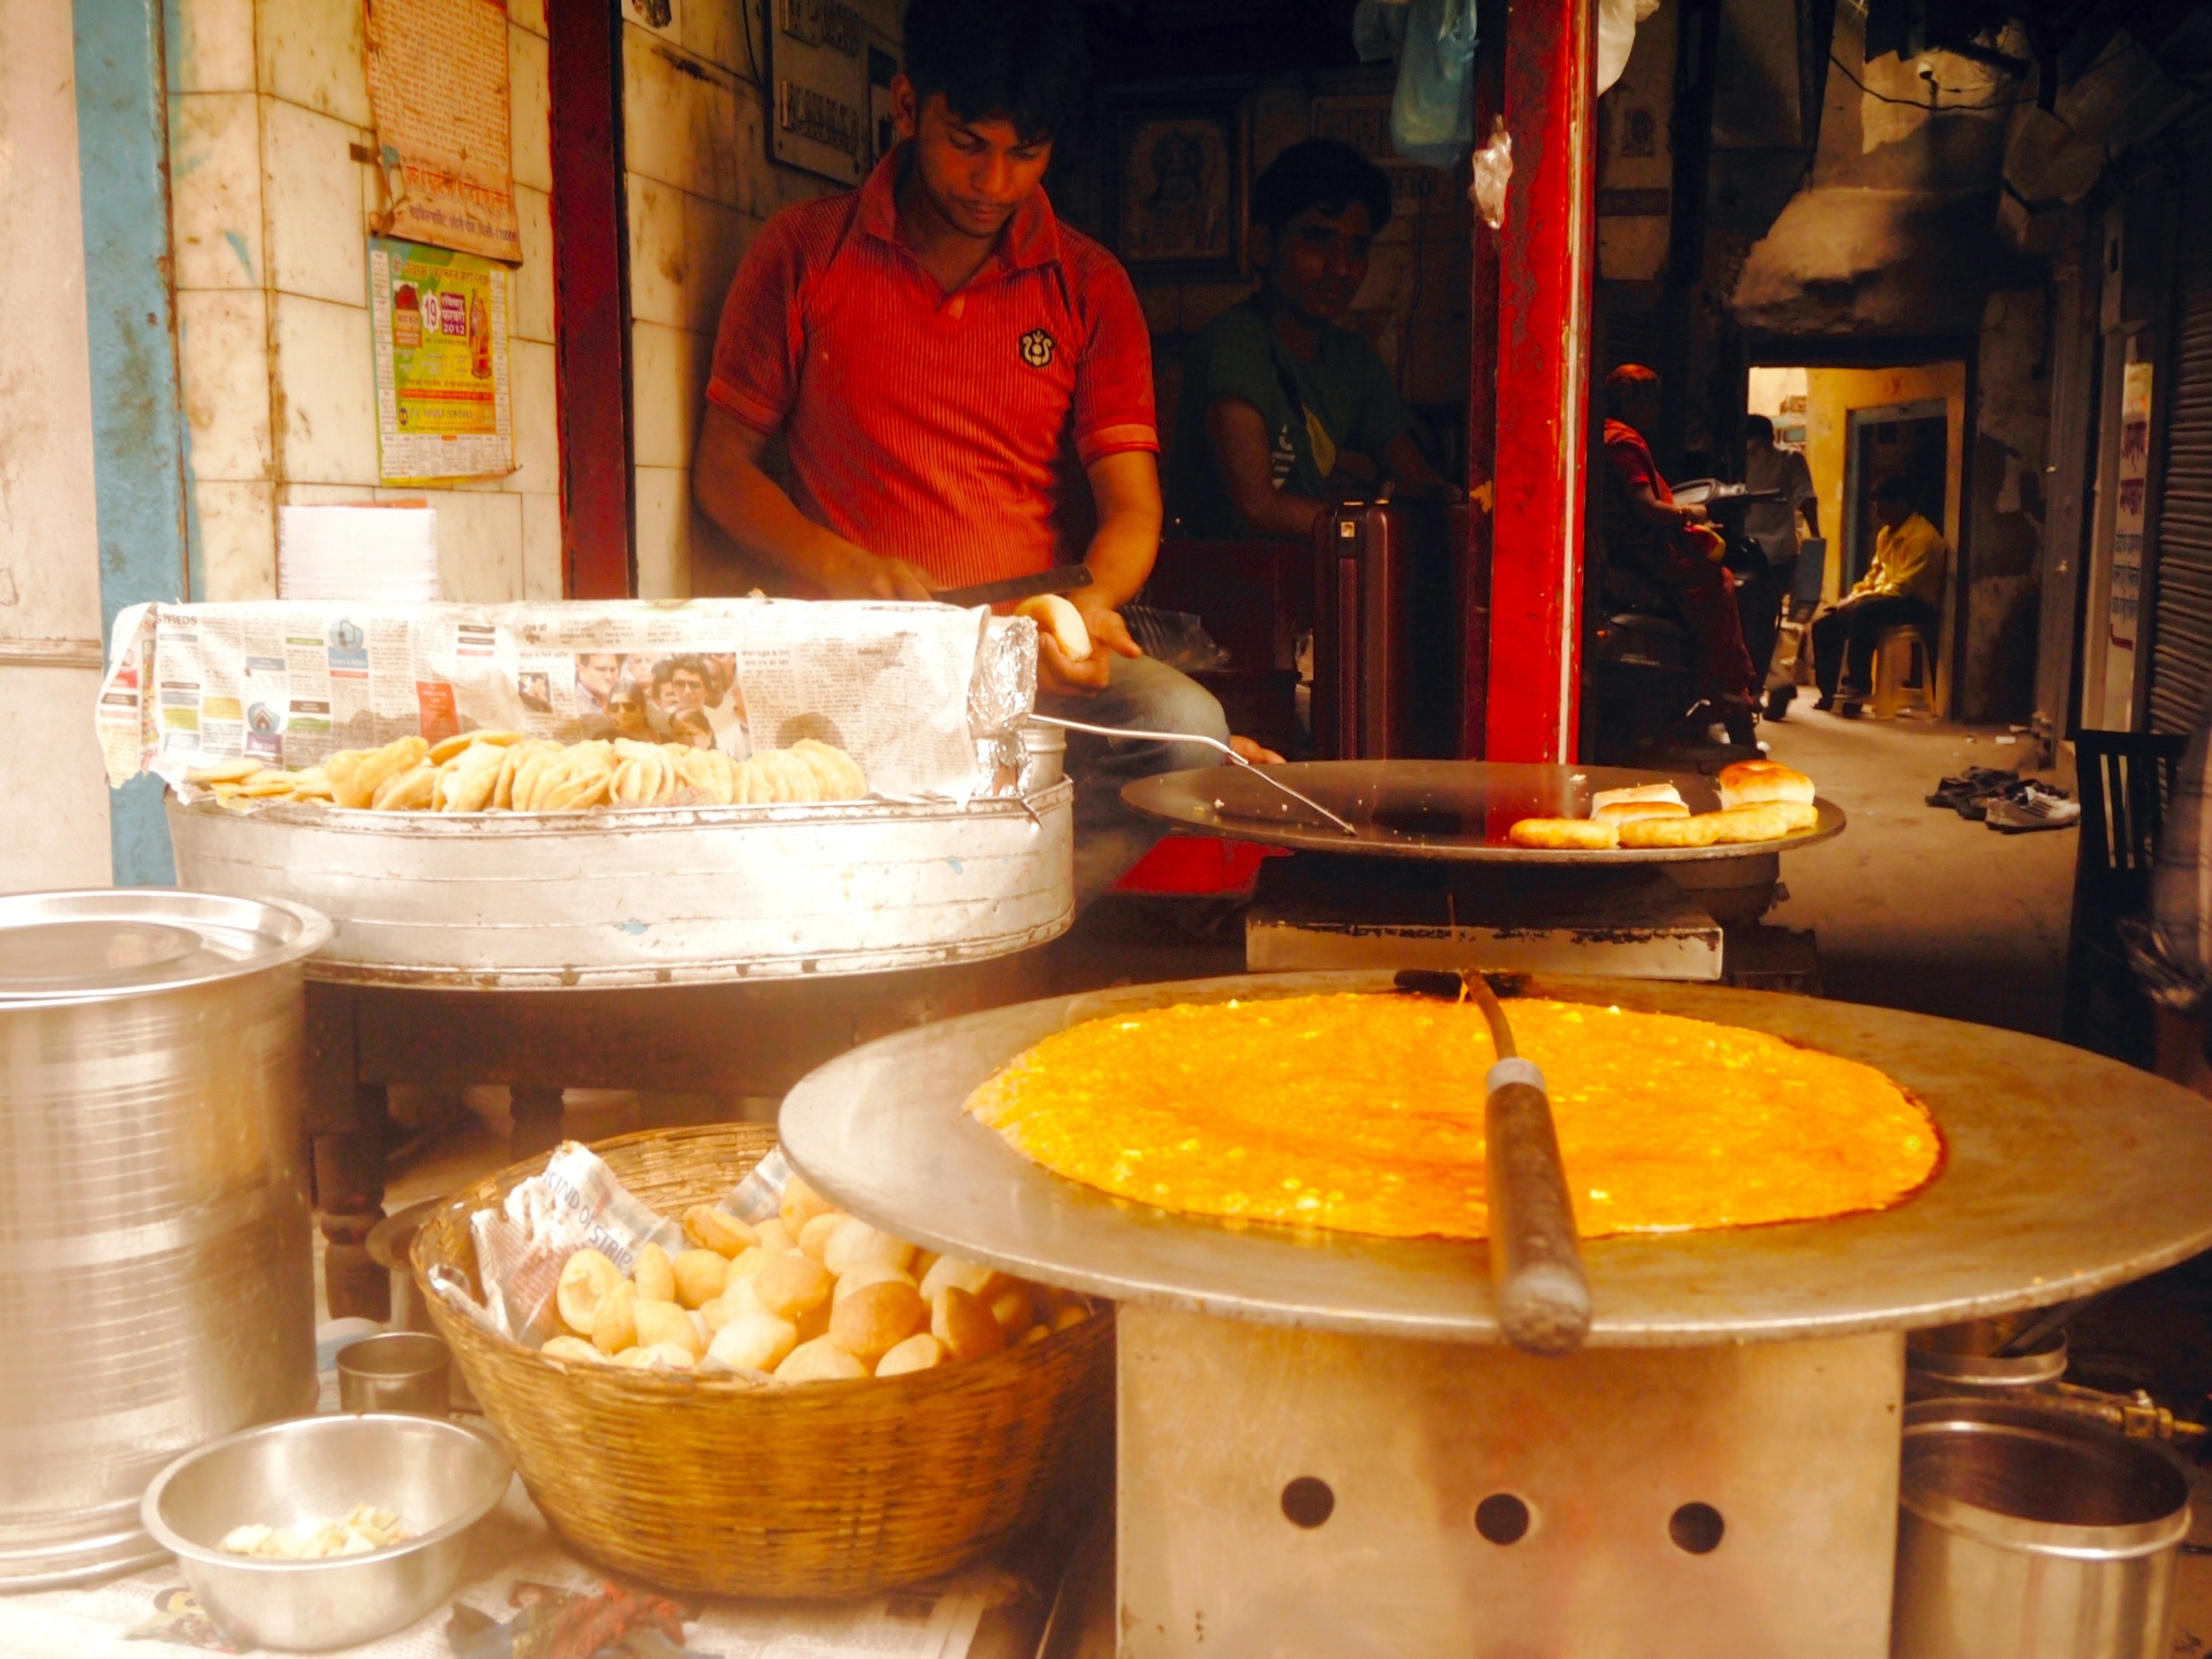 Dosa stand, Delhi India - 3 Days*